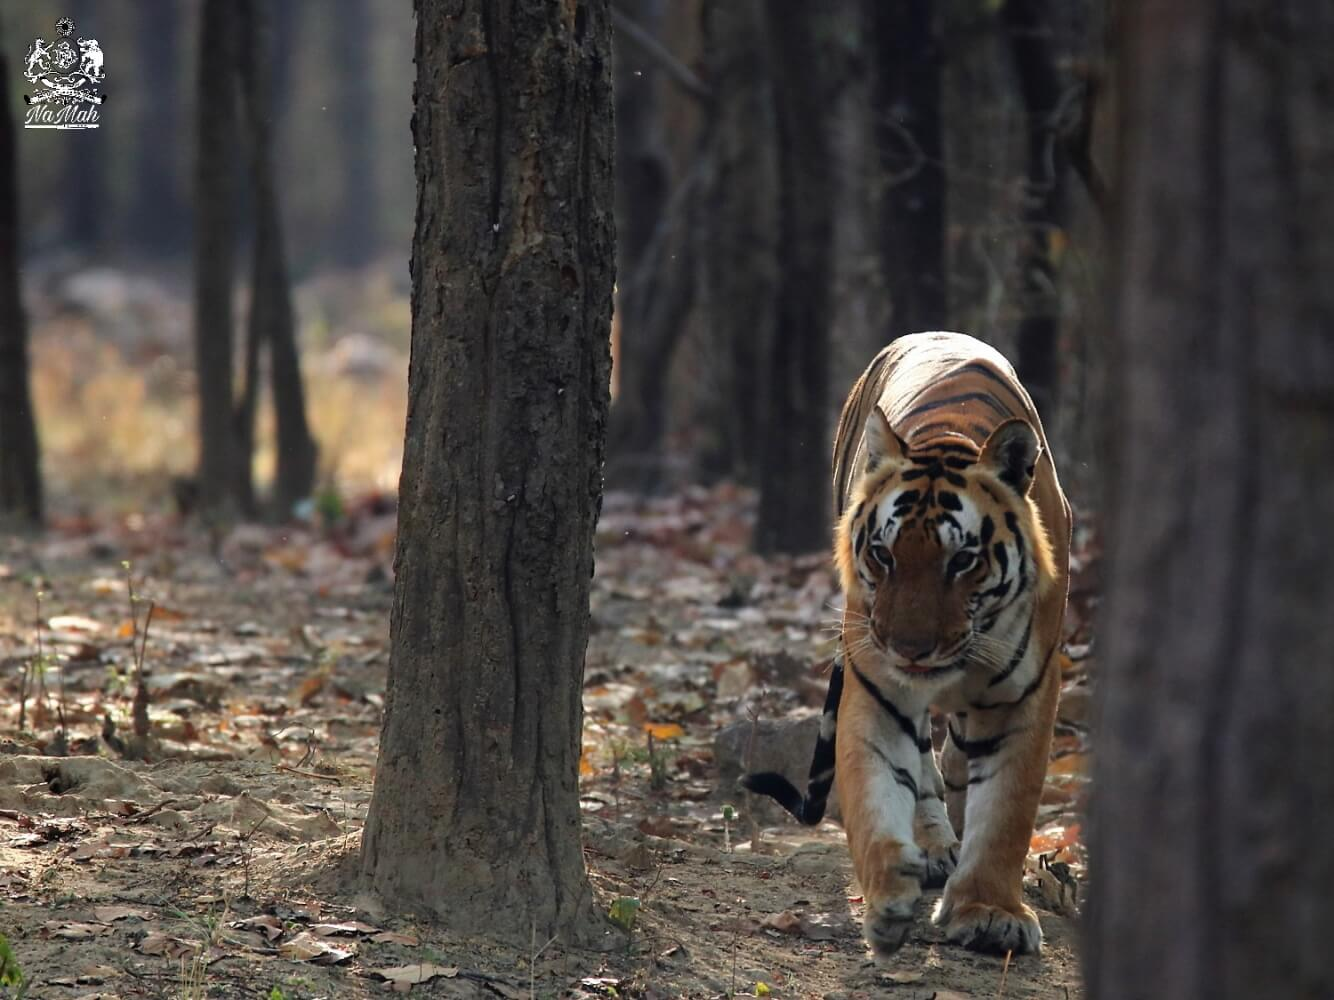 Tiger walking out of wood with back light